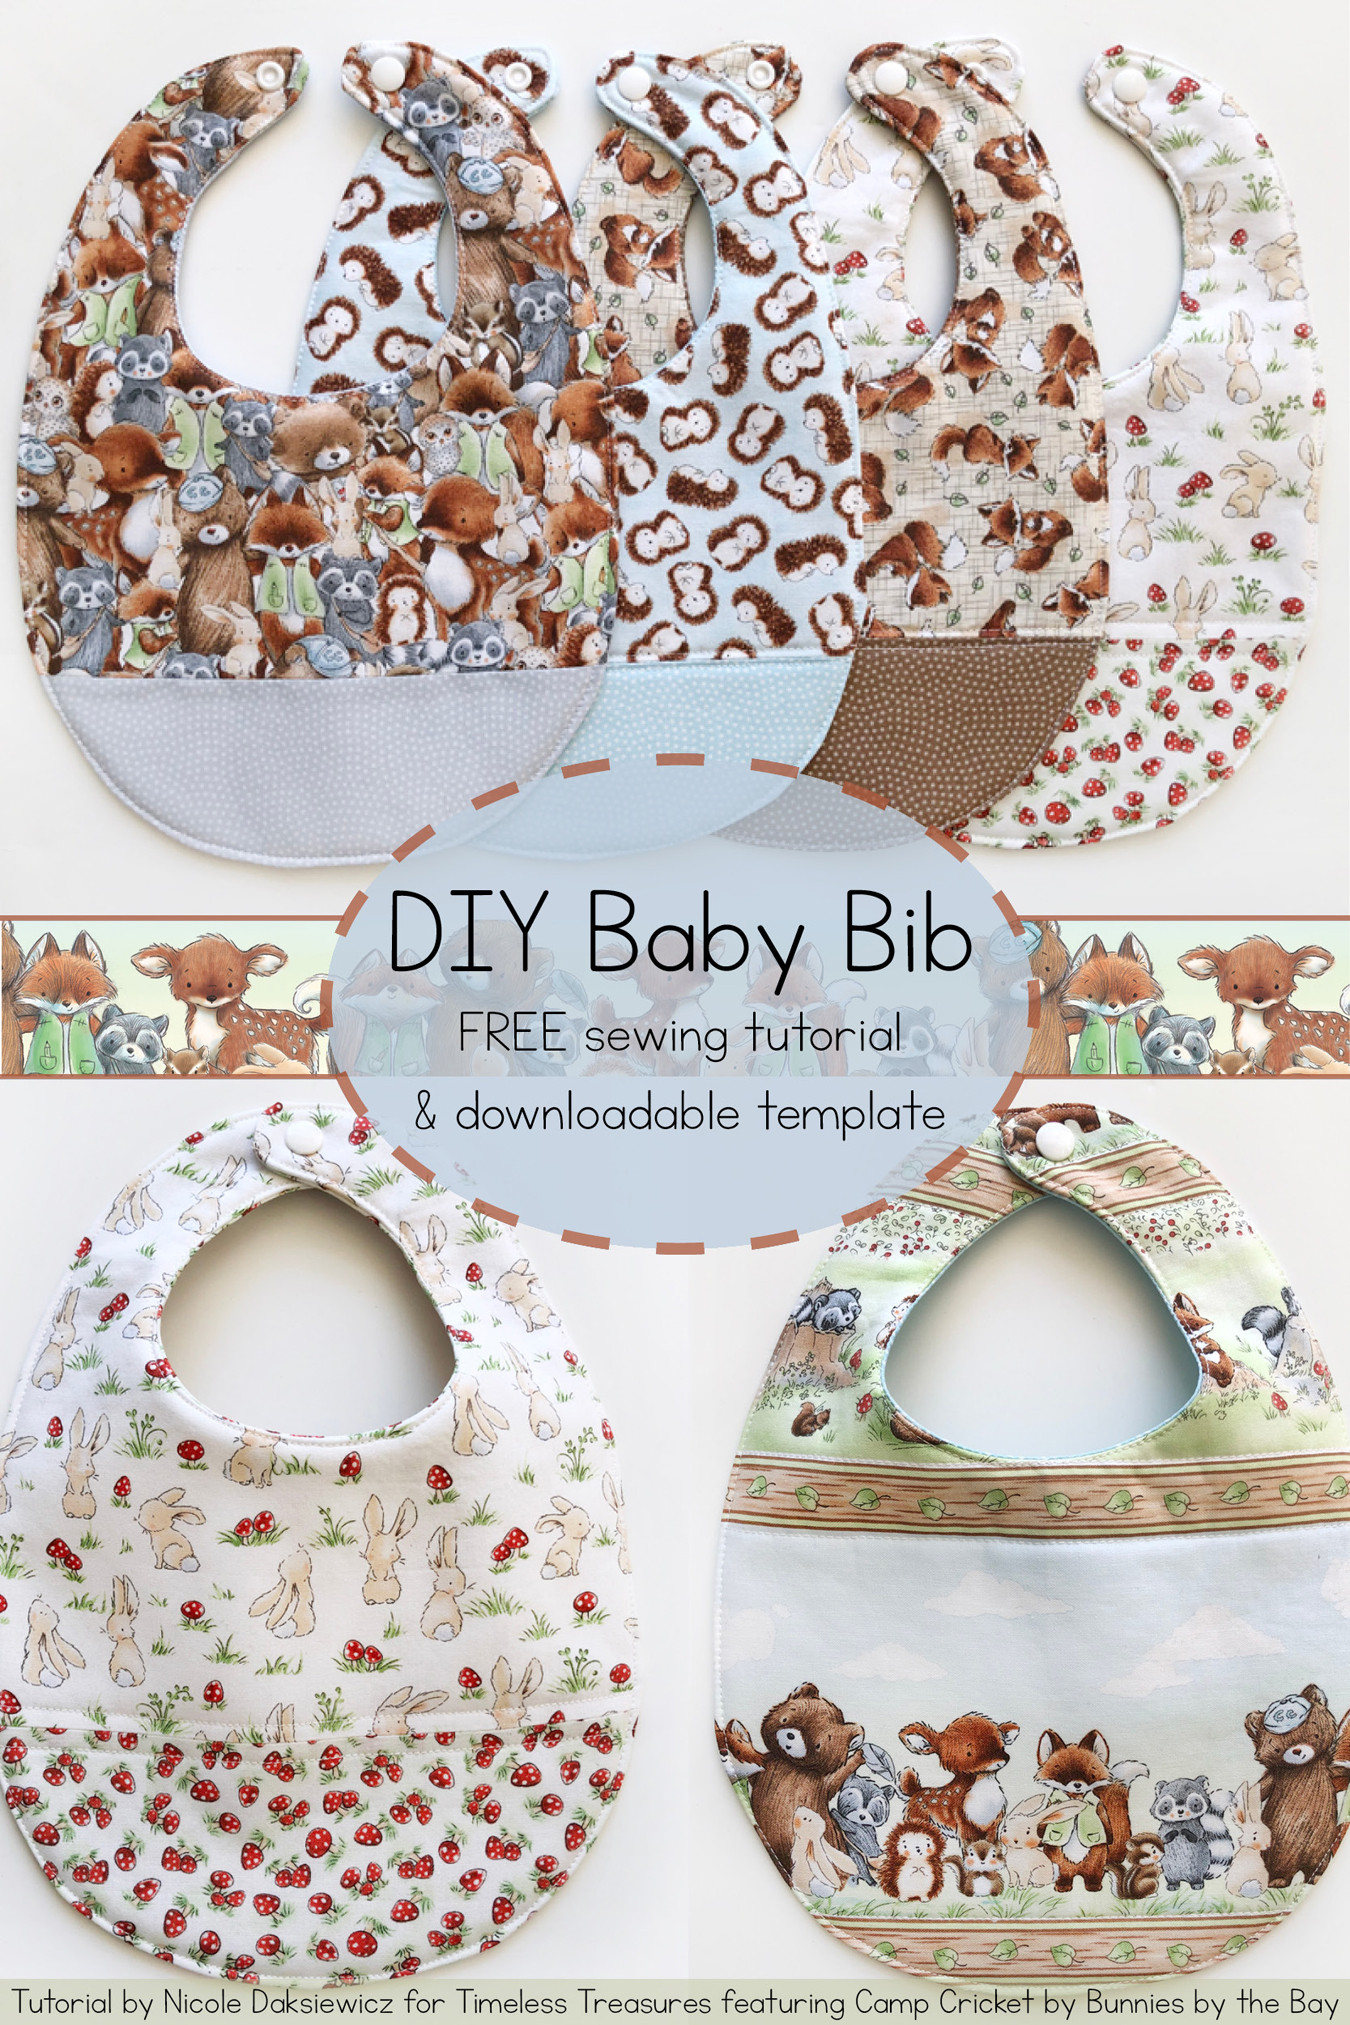 Best ideas about DIY Baby Bibs . Save or Pin Timeless Treasures Now.